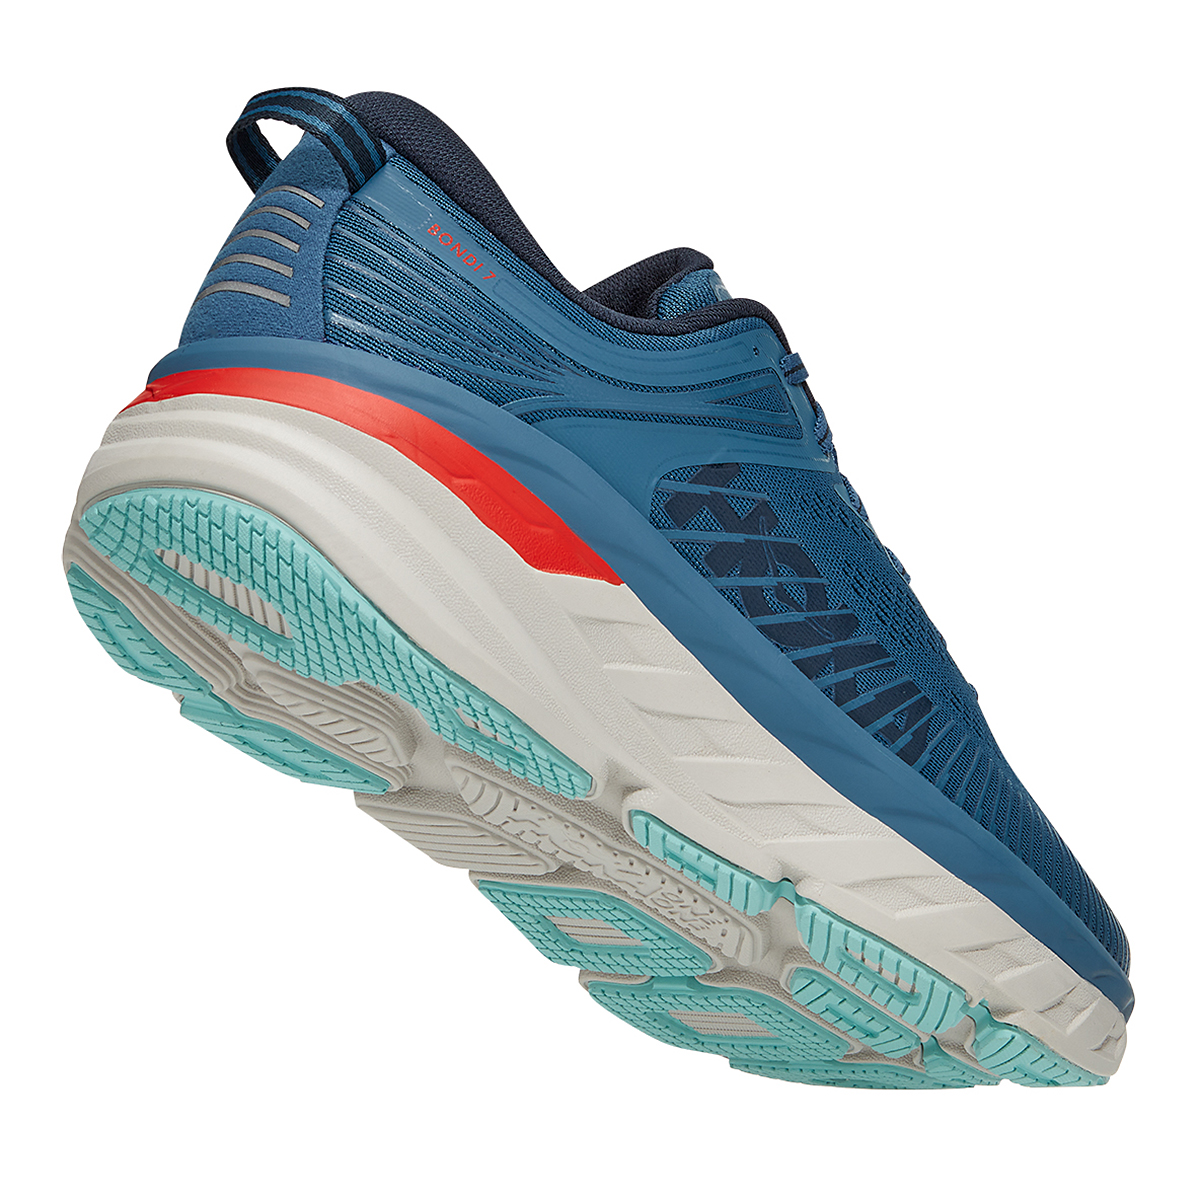 Men's Hoka One One Bondi 7 Running Shoe - Color: Real Teal/Outer Space - Size: 7 - Width: Regular, Real Teal/Outer Space, large, image 4